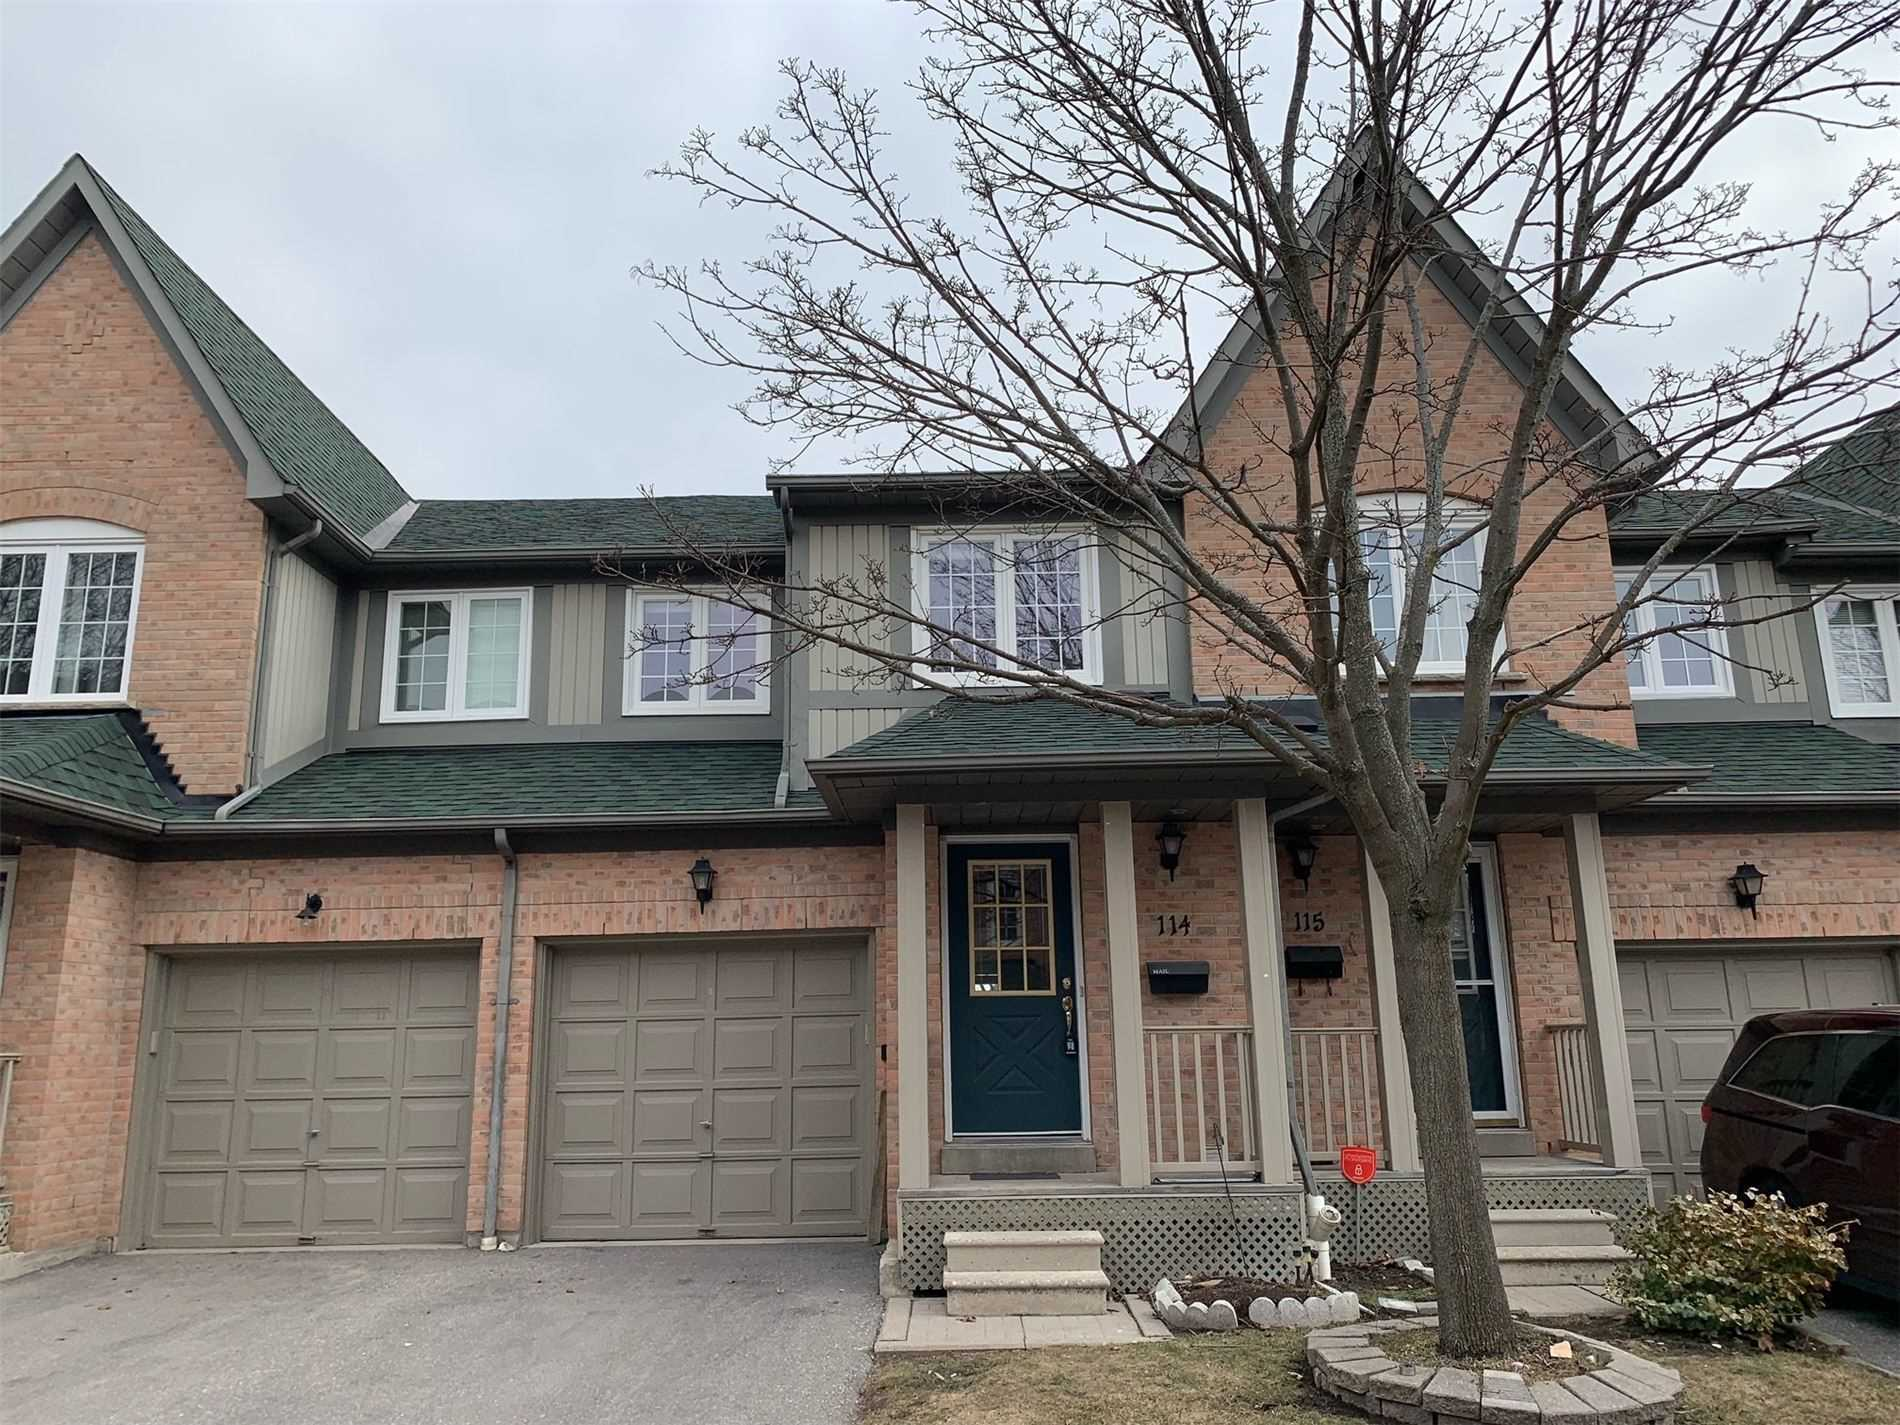 2945 Thomas St, Mississauga, Ontario L5M 6C1, 3 Bedrooms Bedrooms, ,3 BathroomsBathrooms,Condo Townhouse,For Lease,Thomas,W5154724